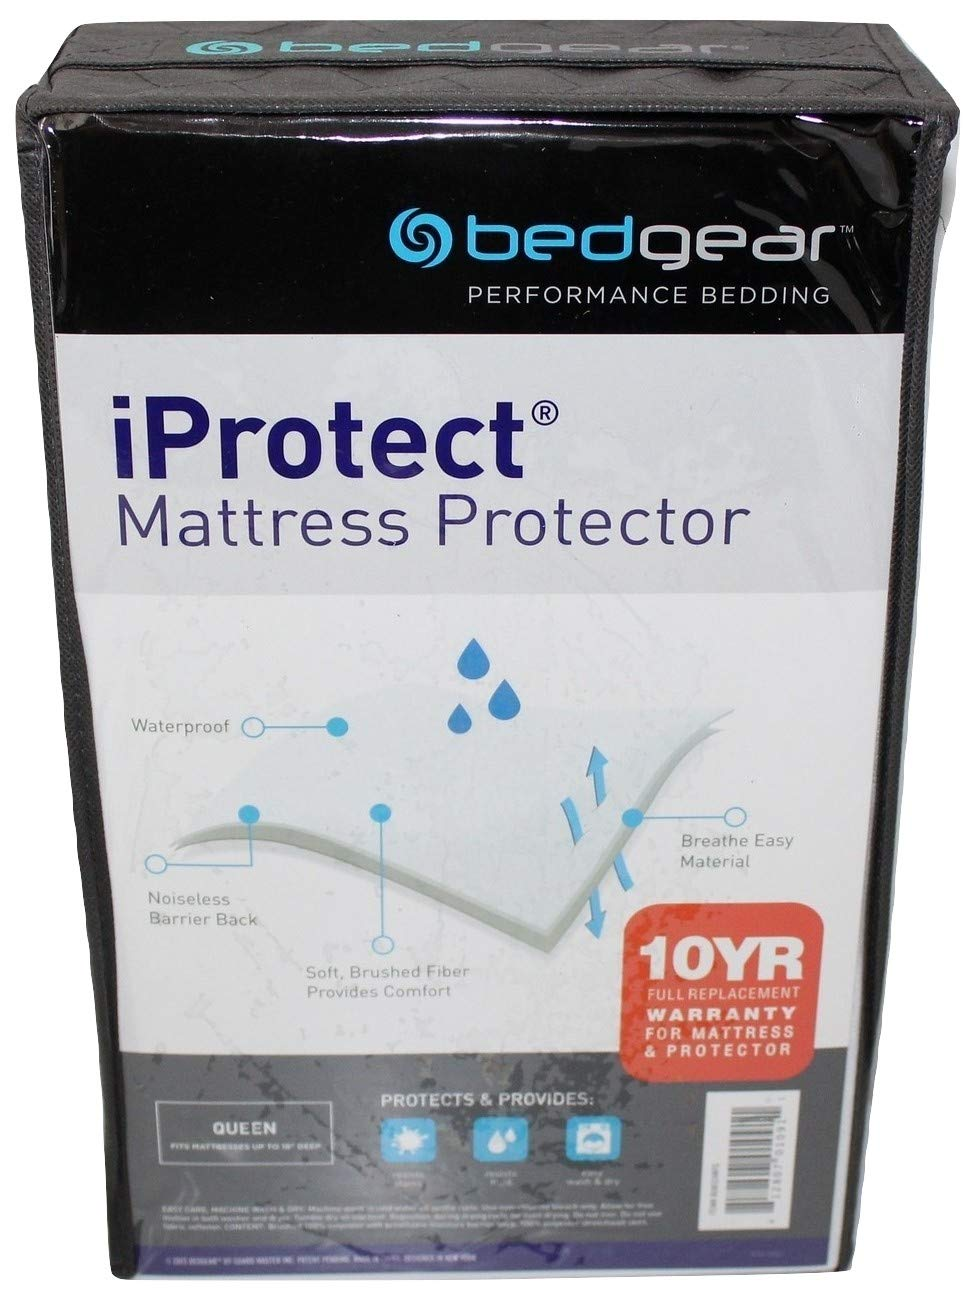 Bedgear iProtect Performance Queen Mattress Protector, Breathable, Anti-Microbial, Waterproof Barrier. Fits mattresses up to 18 inches deep